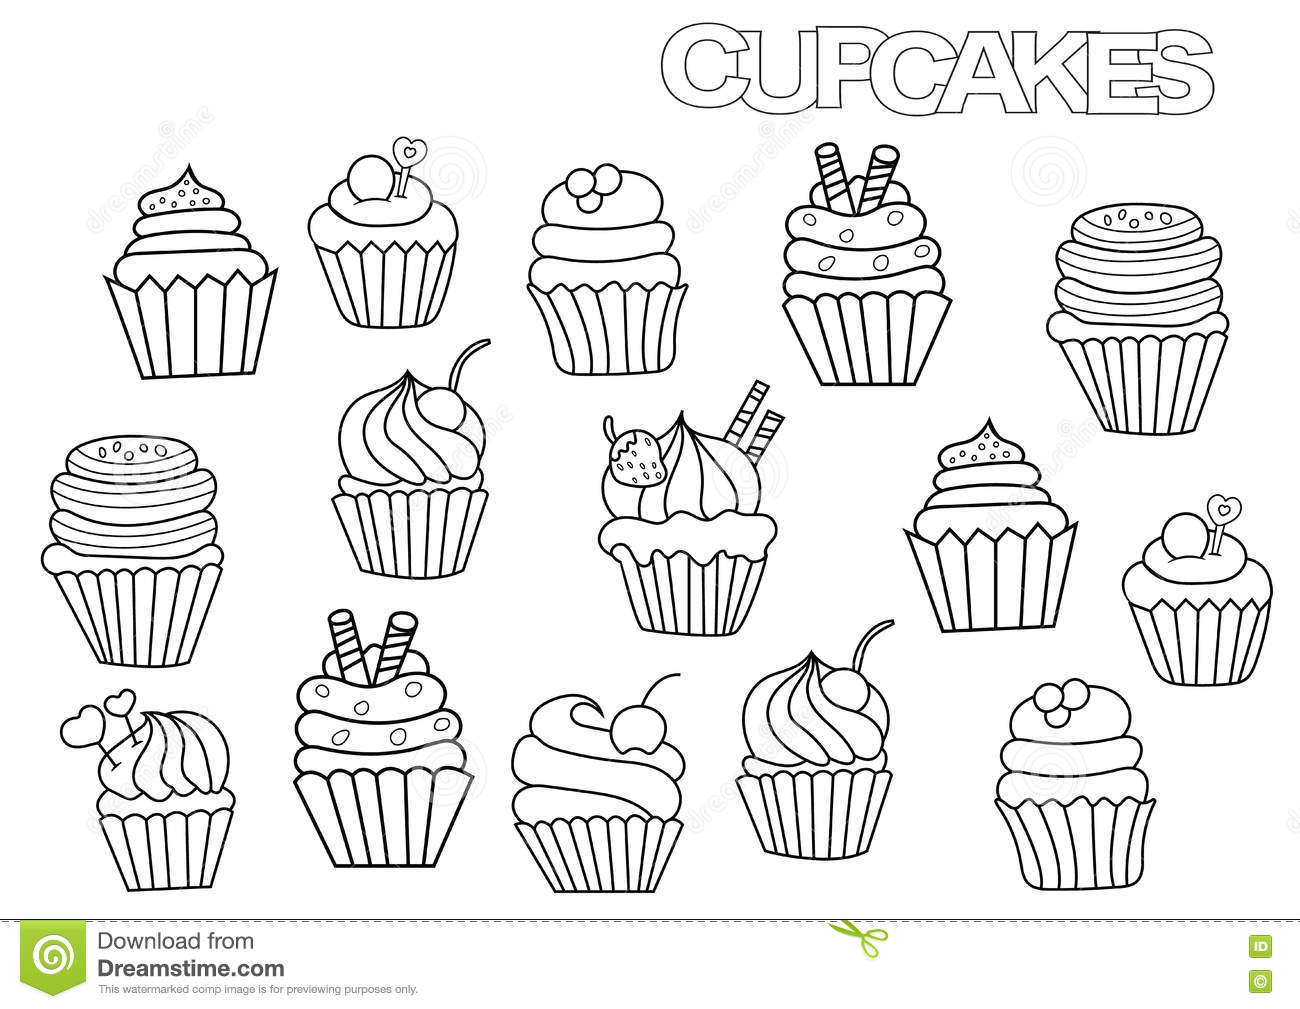 Balloon Clipart Image 50326 together with Outlined Happy Children Around A Cake And Pesents At A Birthday Party 1201502 in addition Thank You Card as well Stock Illustration Happy Birthday Boss Joe Big Cake Says Image67038988 together with Hand Drawn Cupcakes Set Coloring Book Page Template. on happy birthday celebration